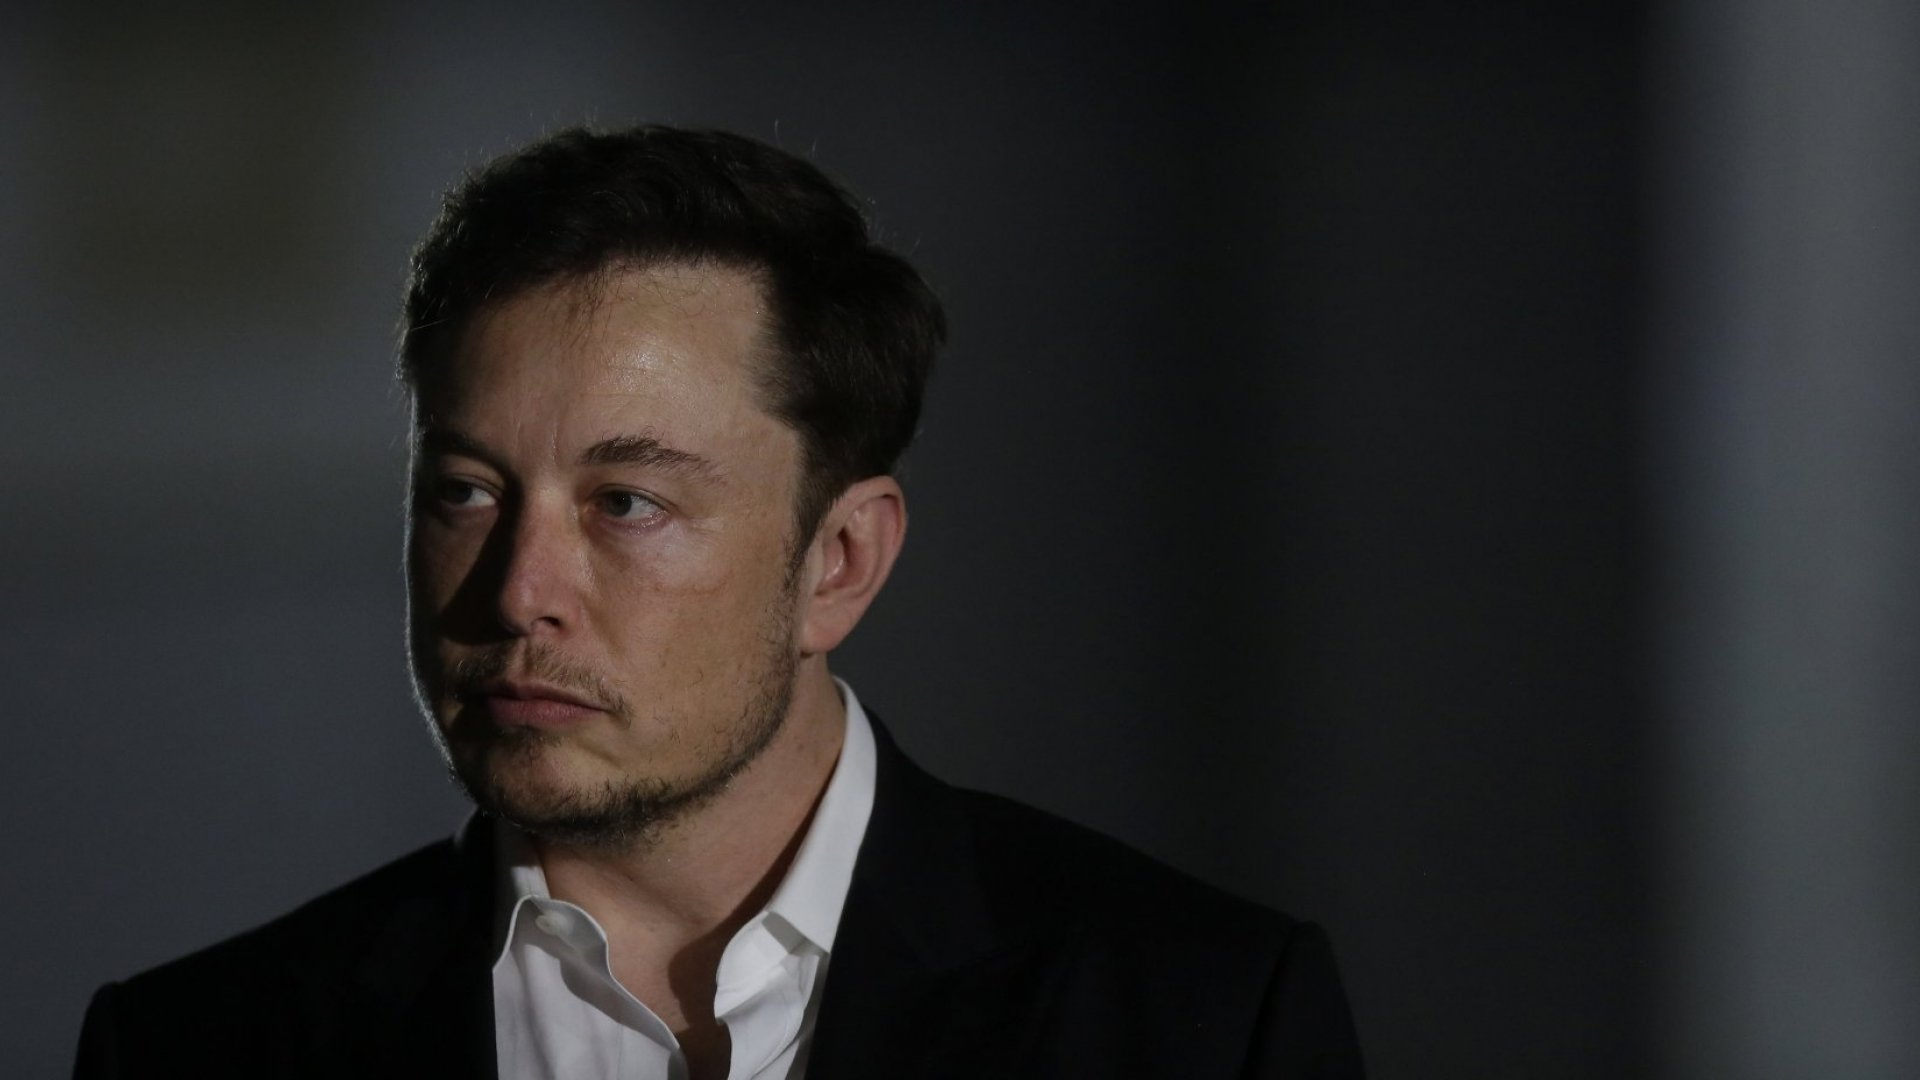 1 Big Takeaway From That Really Weird Elon Musk Podcast Interview